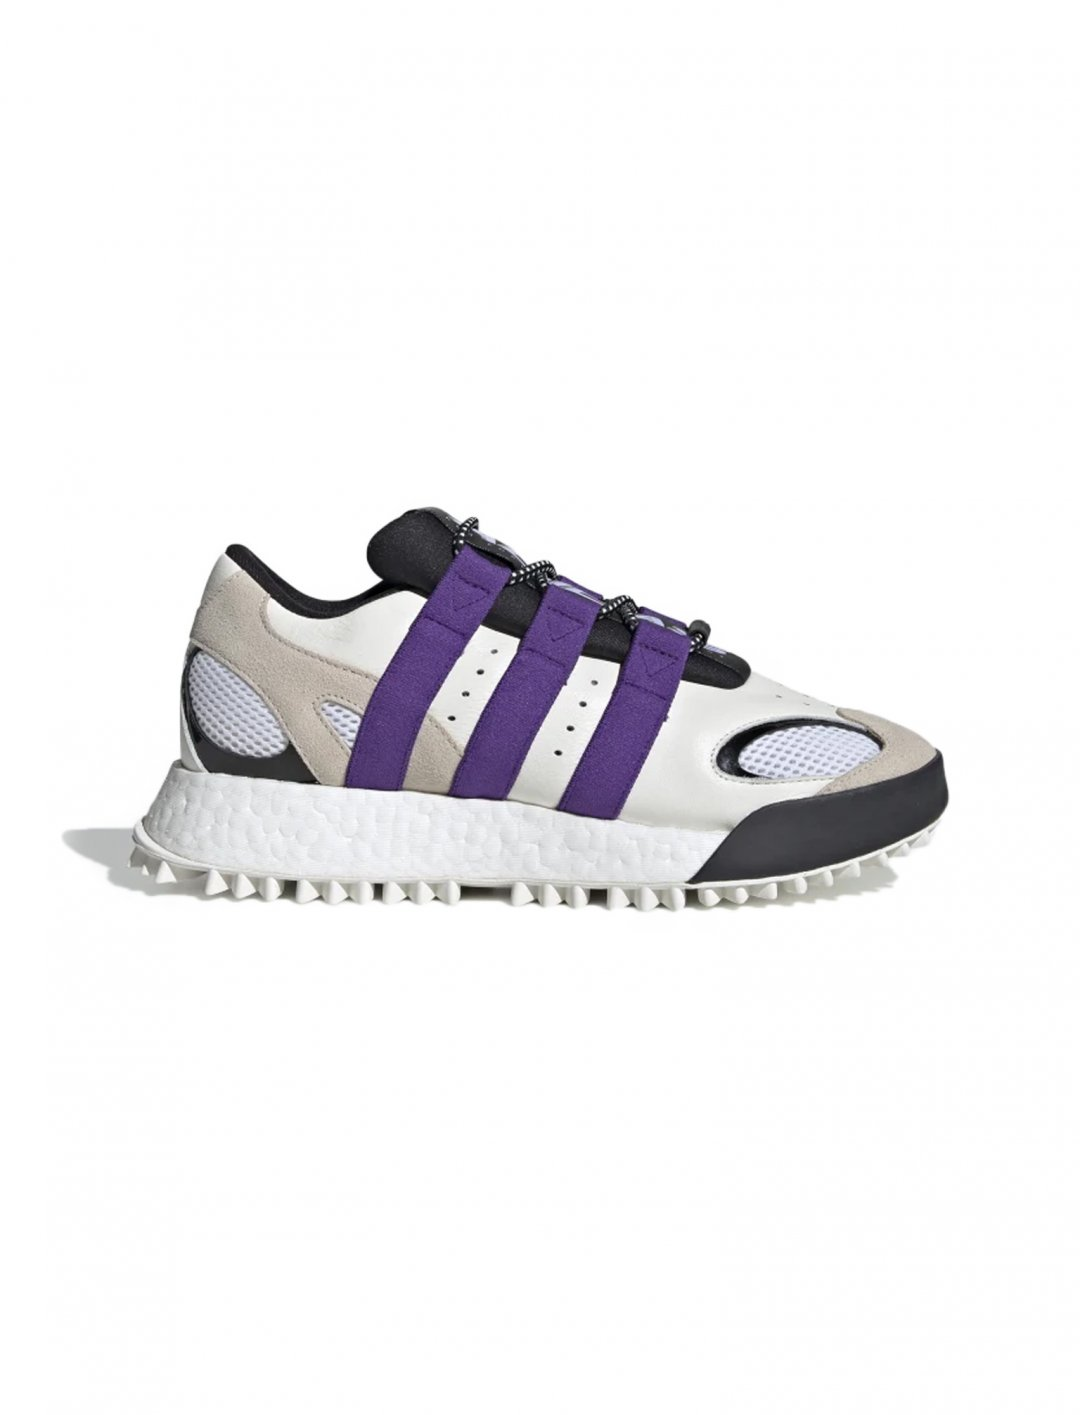 "Wangbody Run Shoes {""id"":12,""product_section_id"":1,""name"":""Shoes"",""order"":12} Alexander Wang x Adidas"